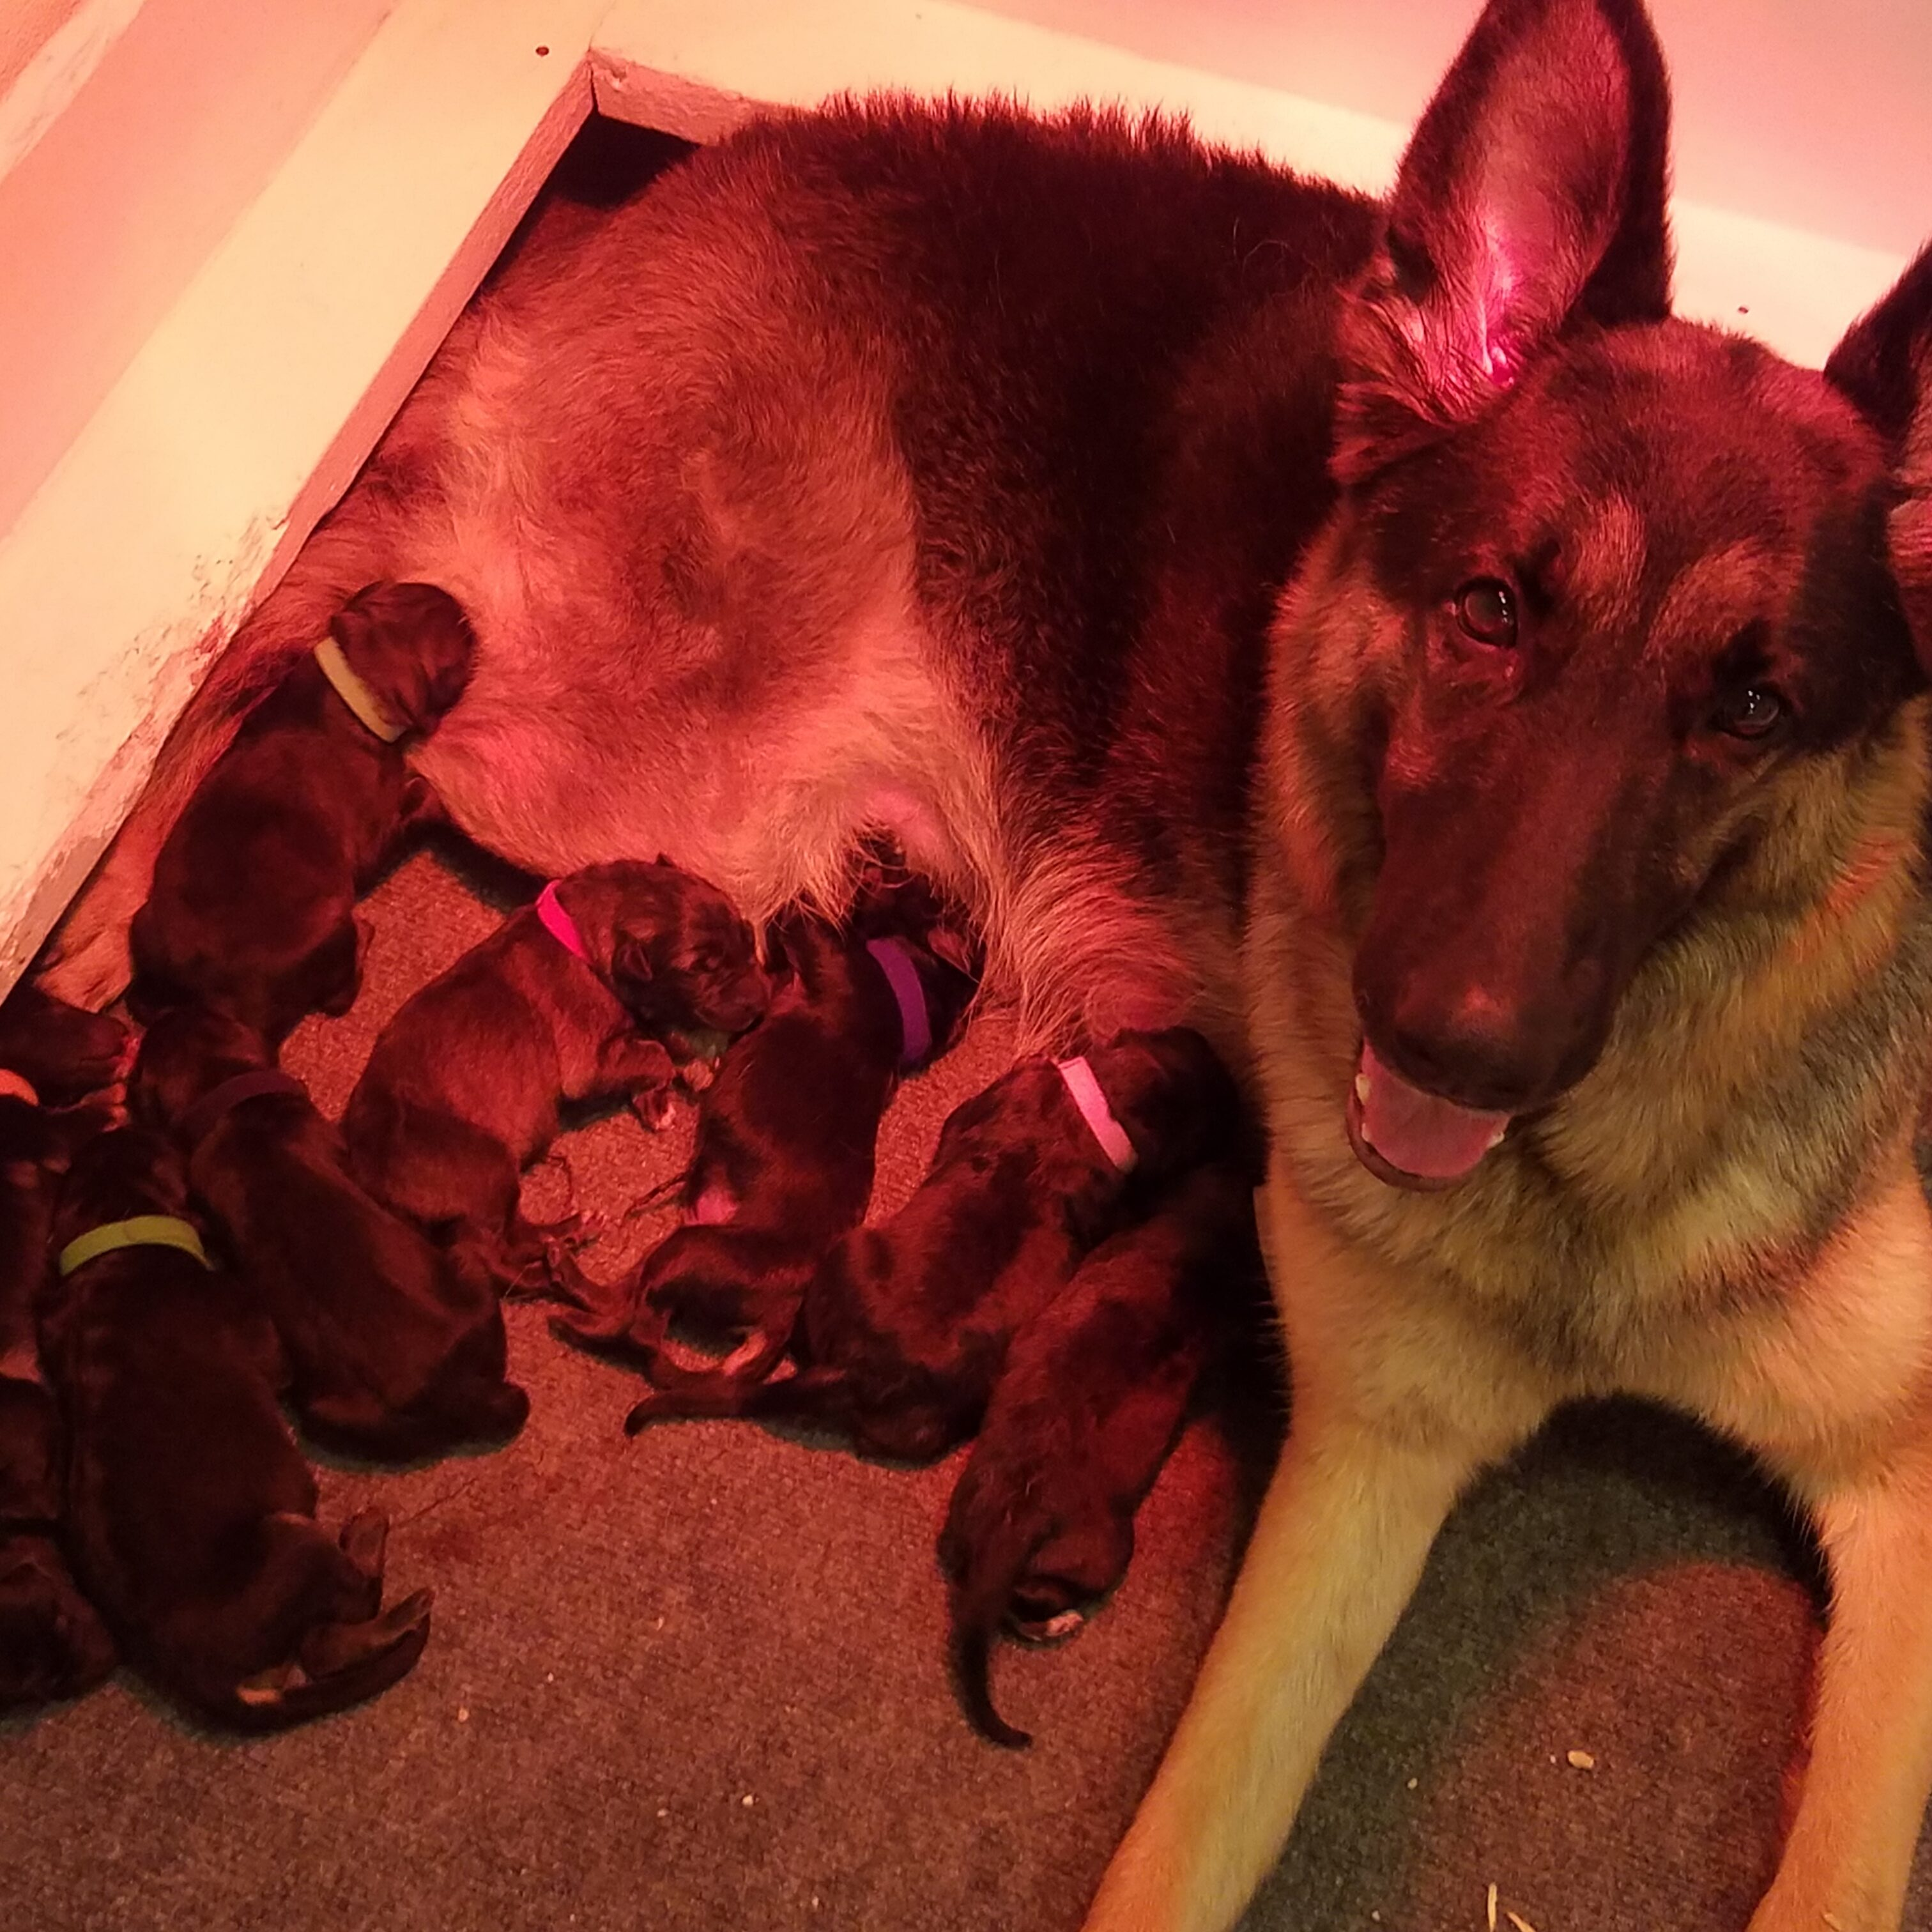 Janry Pet Resort, Janry German Shepherds, German Shepherd, Stewartsville NJ, Puppies, Puppy